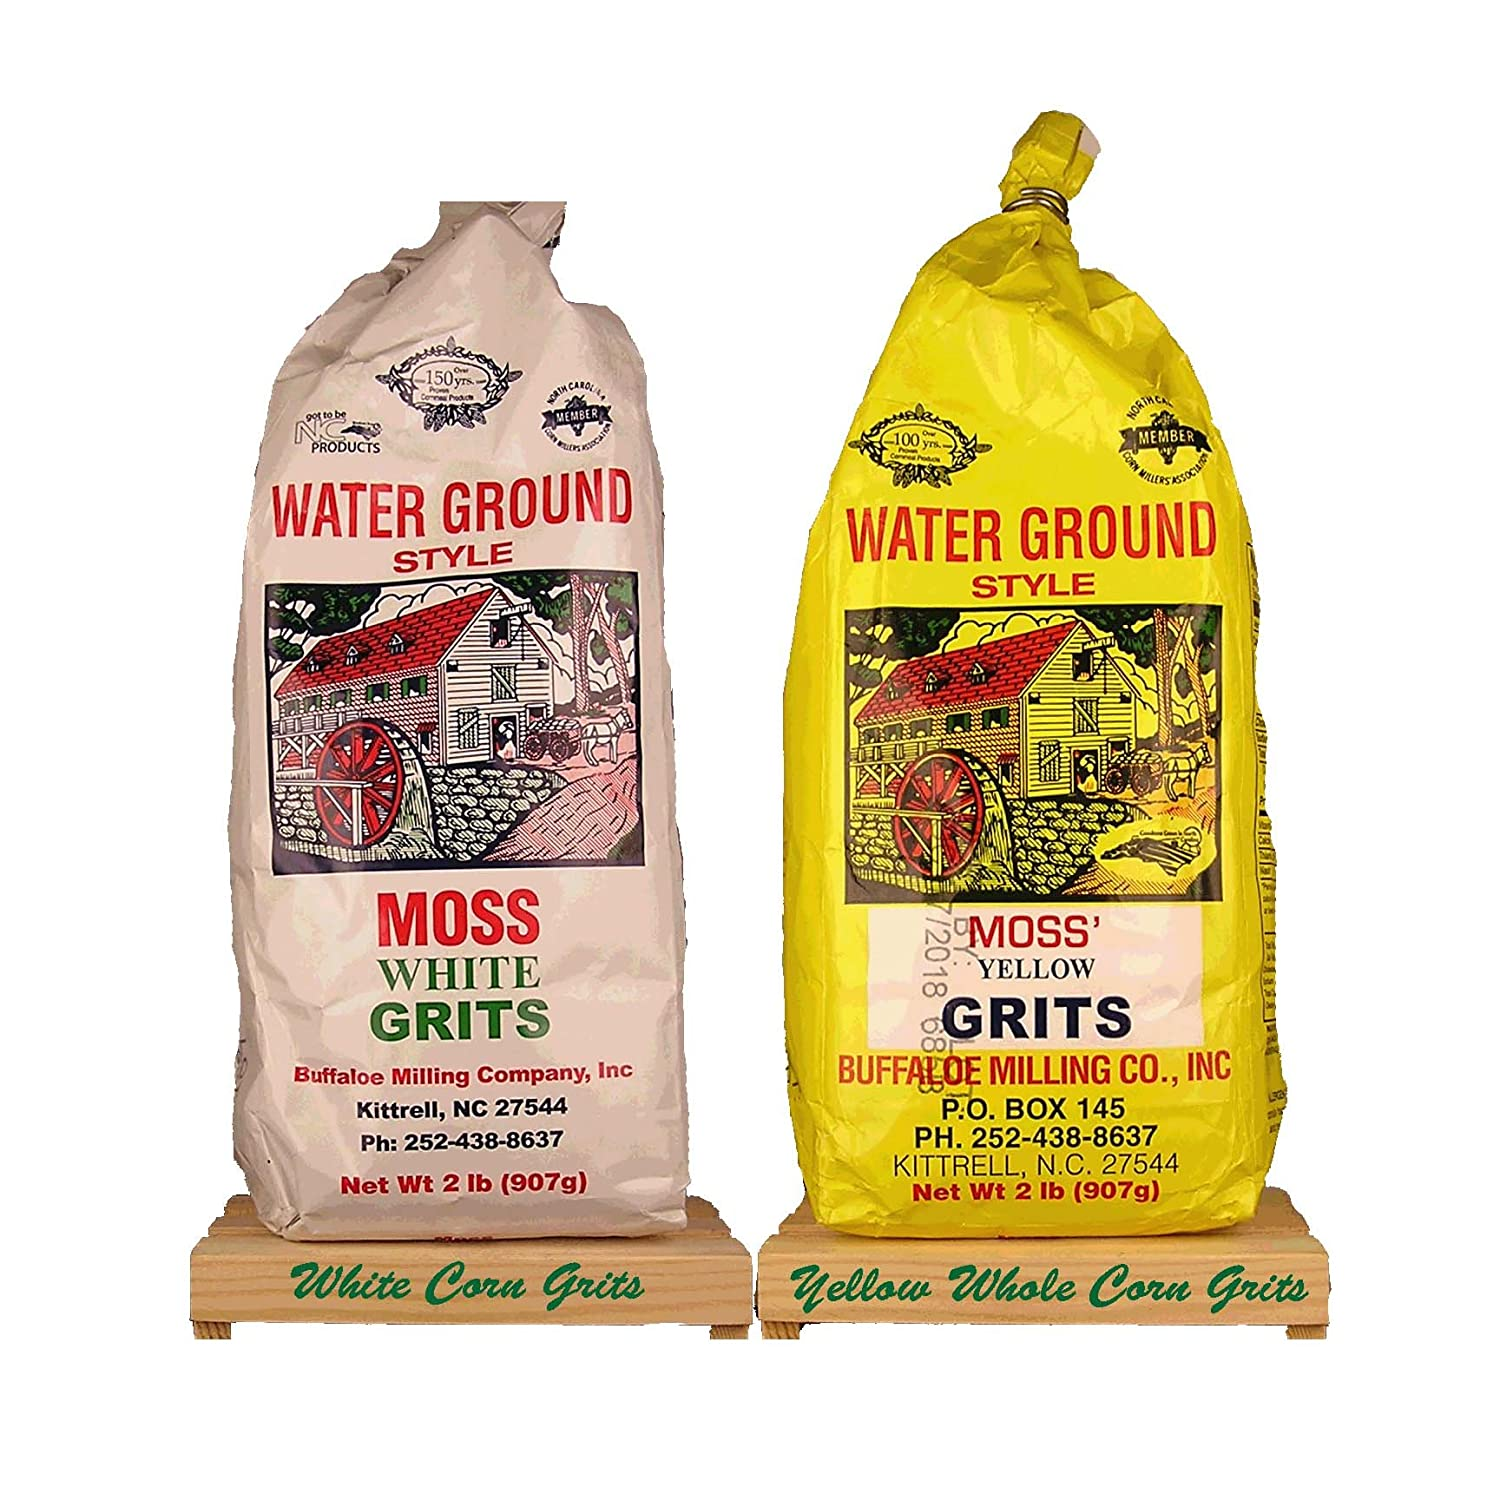 Moss Water Ground White and Yellow Whole Corn Grits each Bag is 2 Lbs